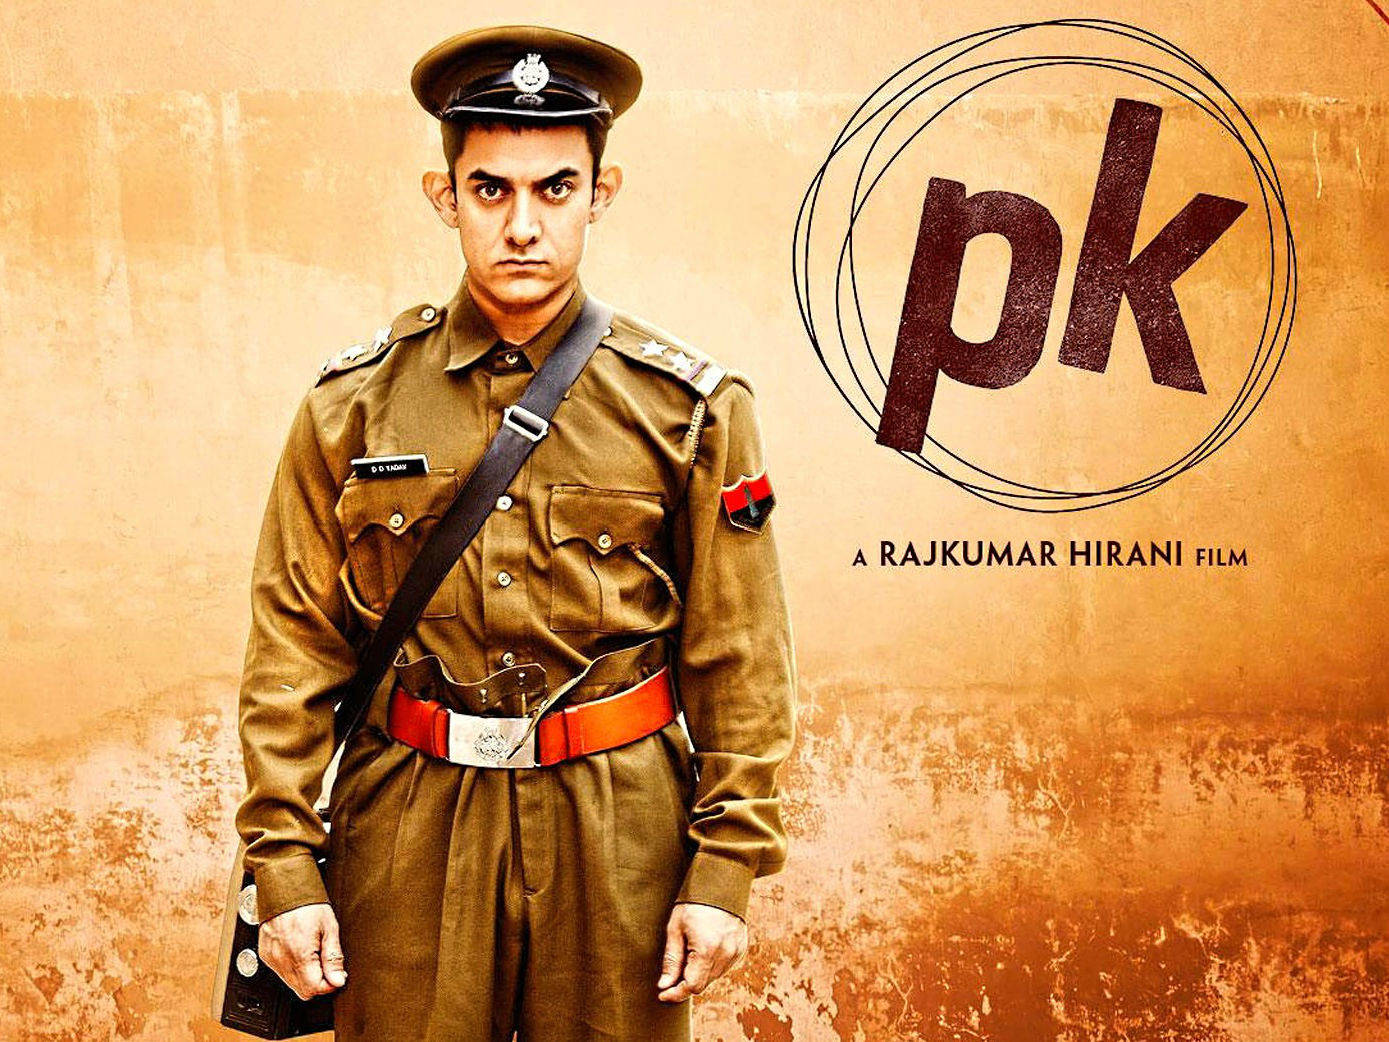 The Latest Hindi Movie Dramebaaz Kalakaar Music Available On Songs.PK, Movie  Is Directed By Best Director Of Bollywood Film Naresh Singla, Cast And Crew  ...